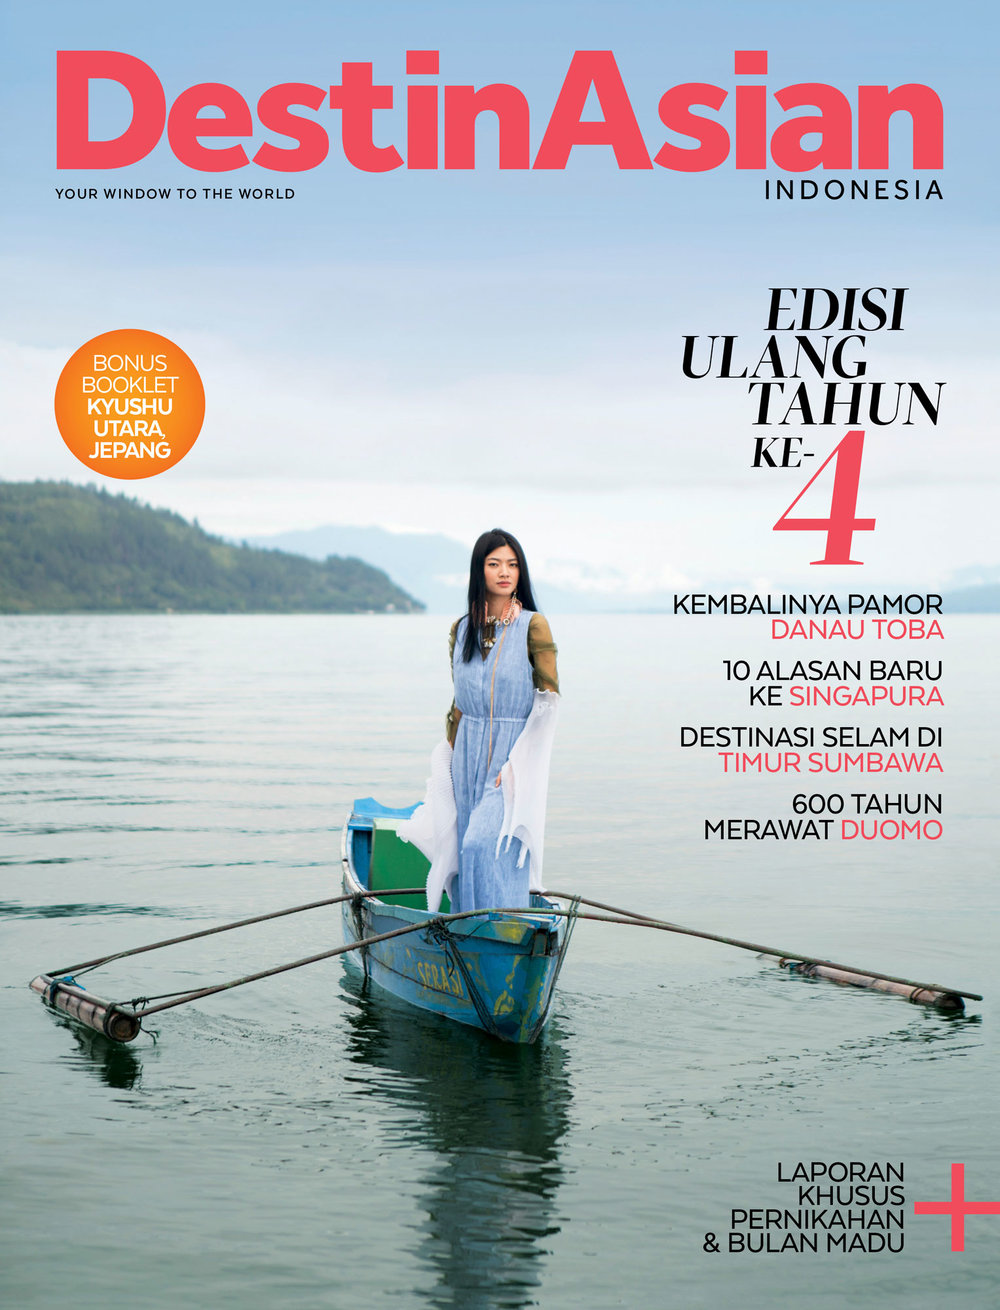 DestinAsian-Indonesia-Maret-April-2017_W.jpg